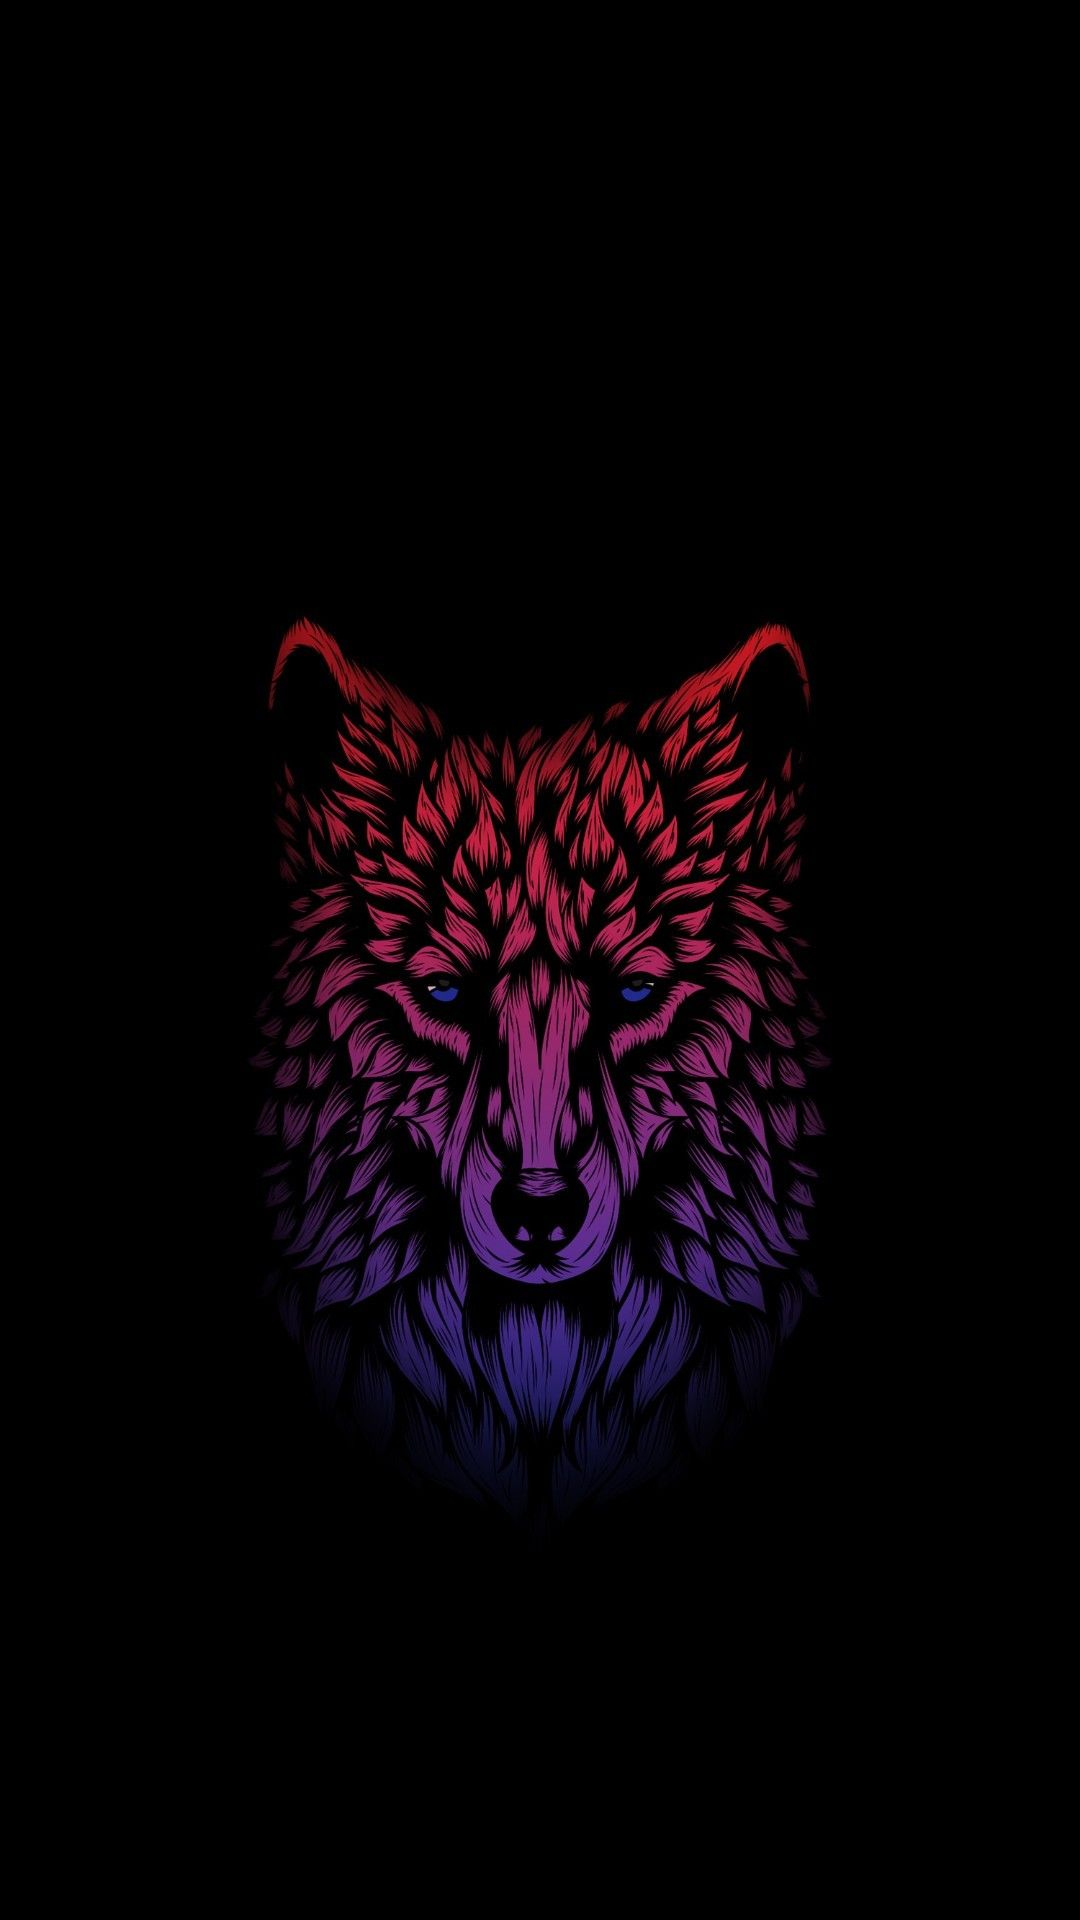 1080x1920 Tribal Wolf Wallpaper (58+ images)